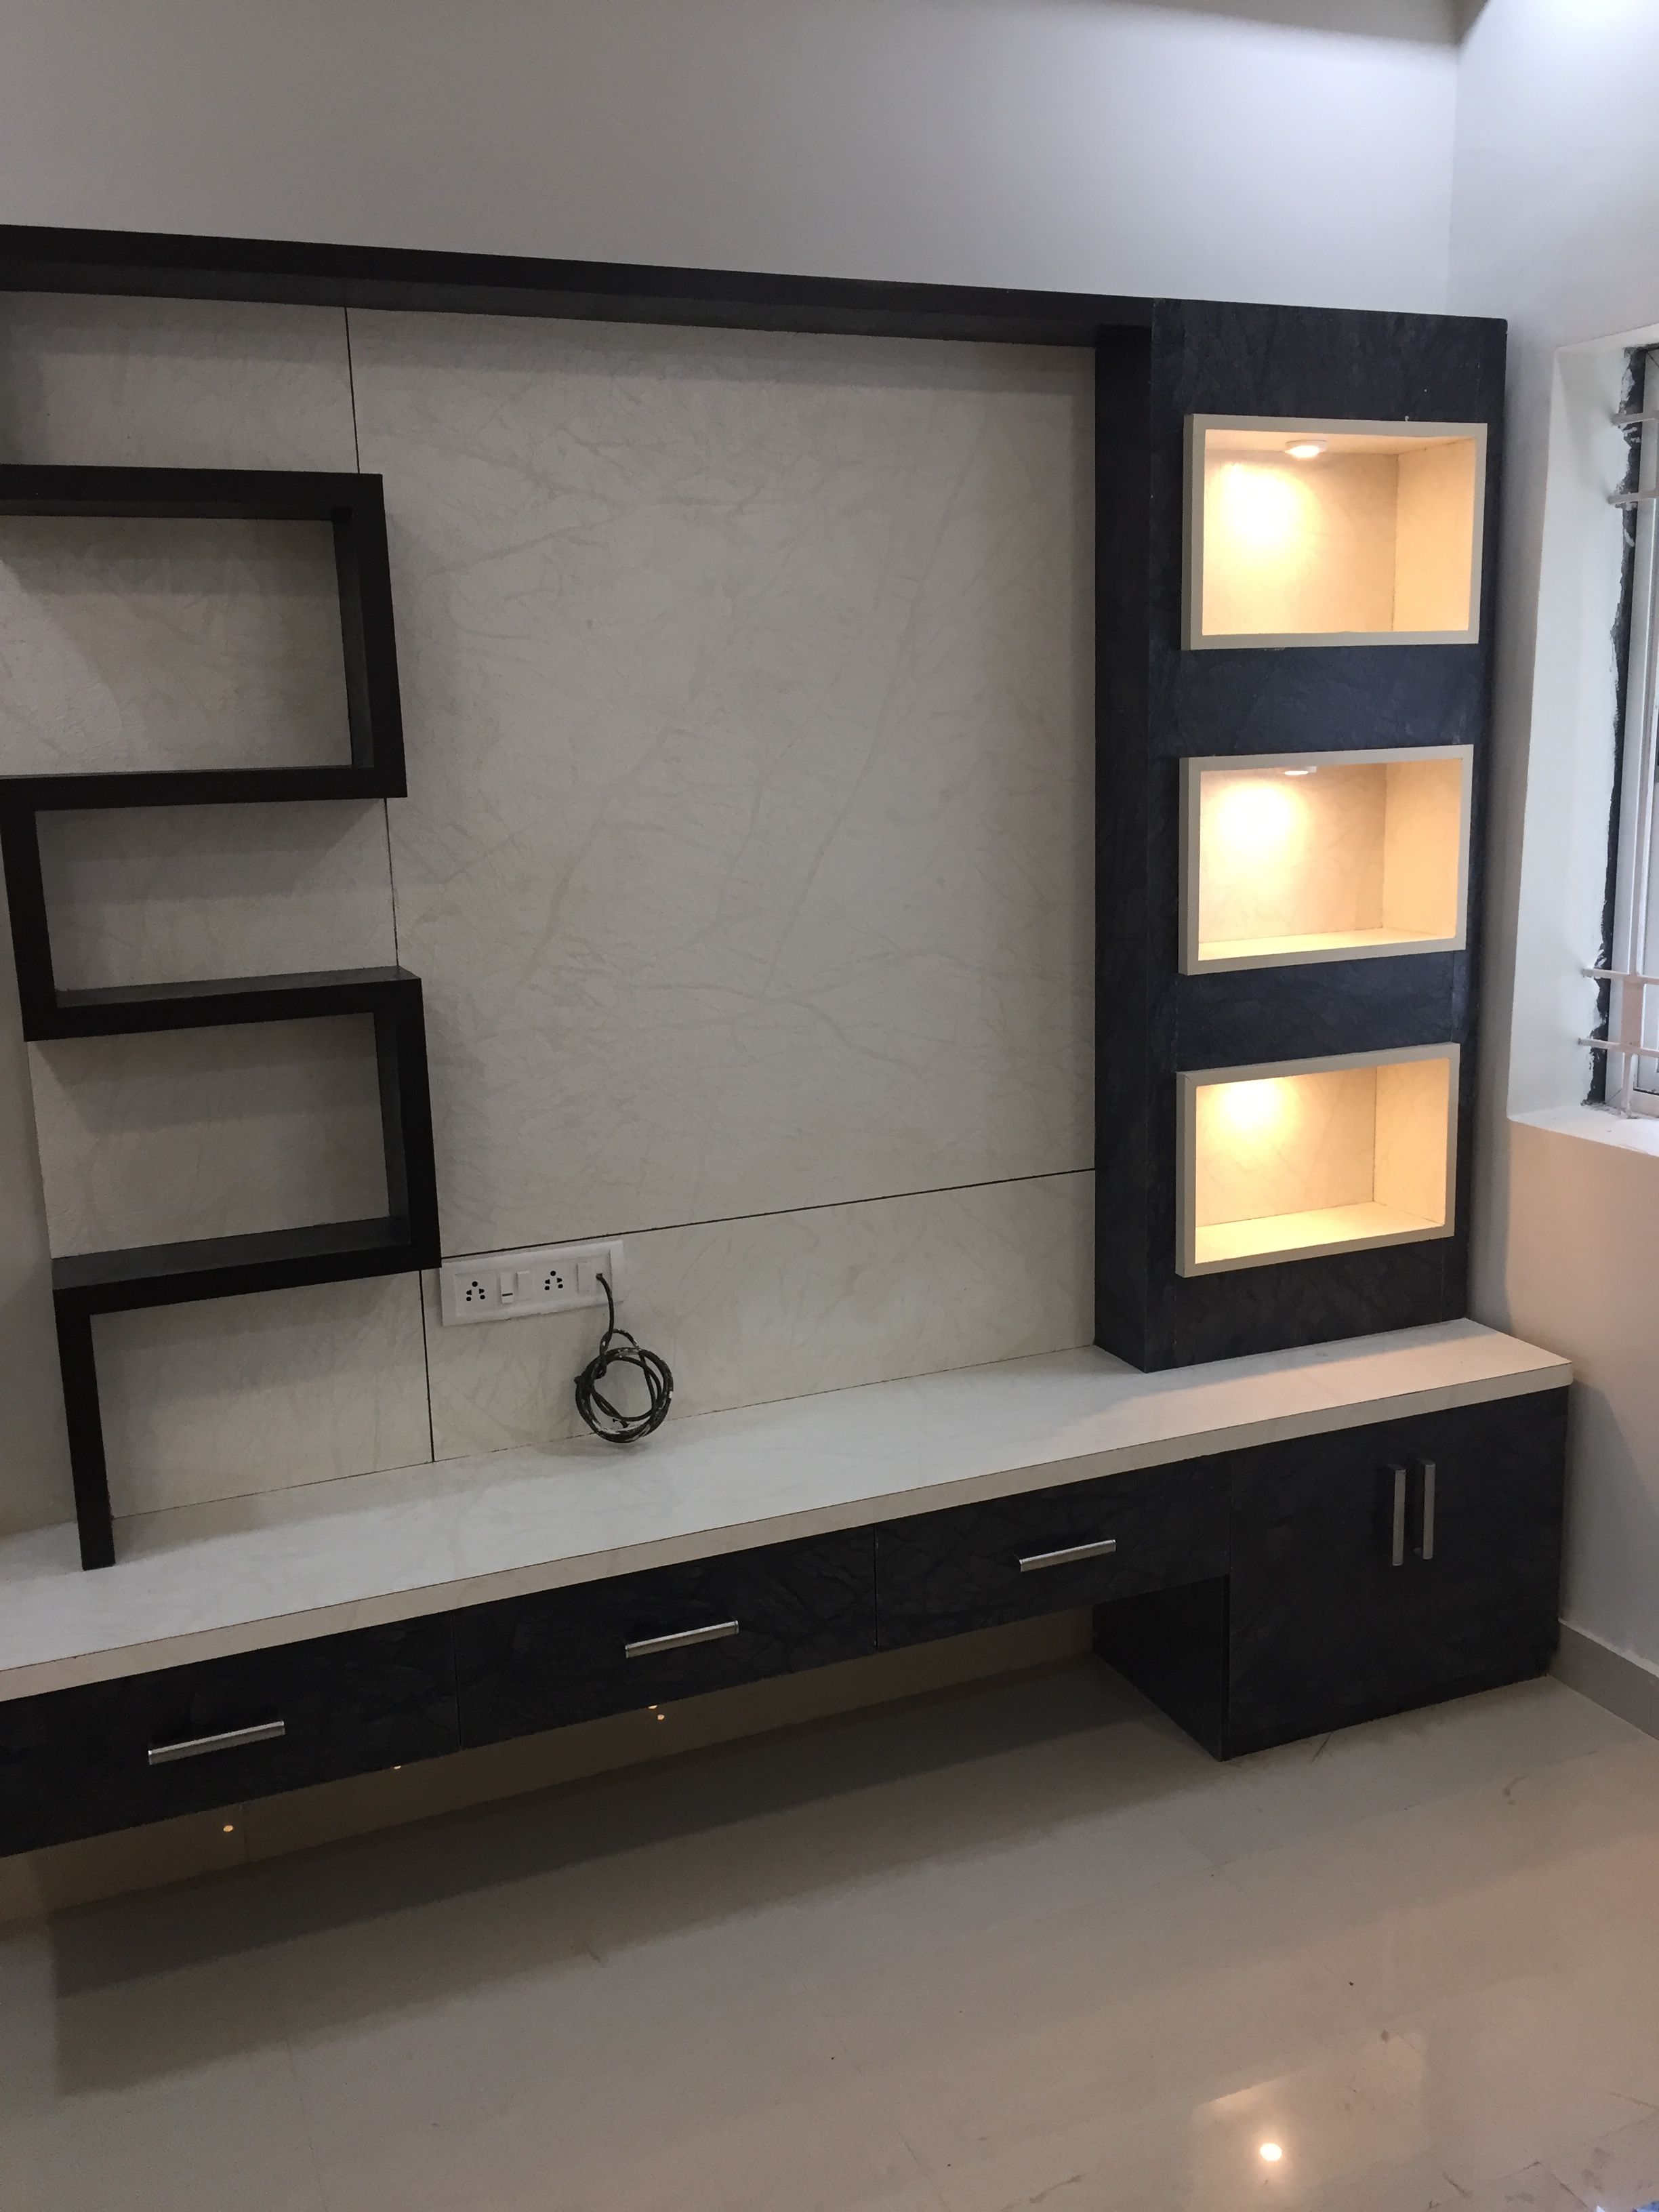 Pin By خالد فتحى On خالد In 2020 Modern Tv Wall Units Tv Wall